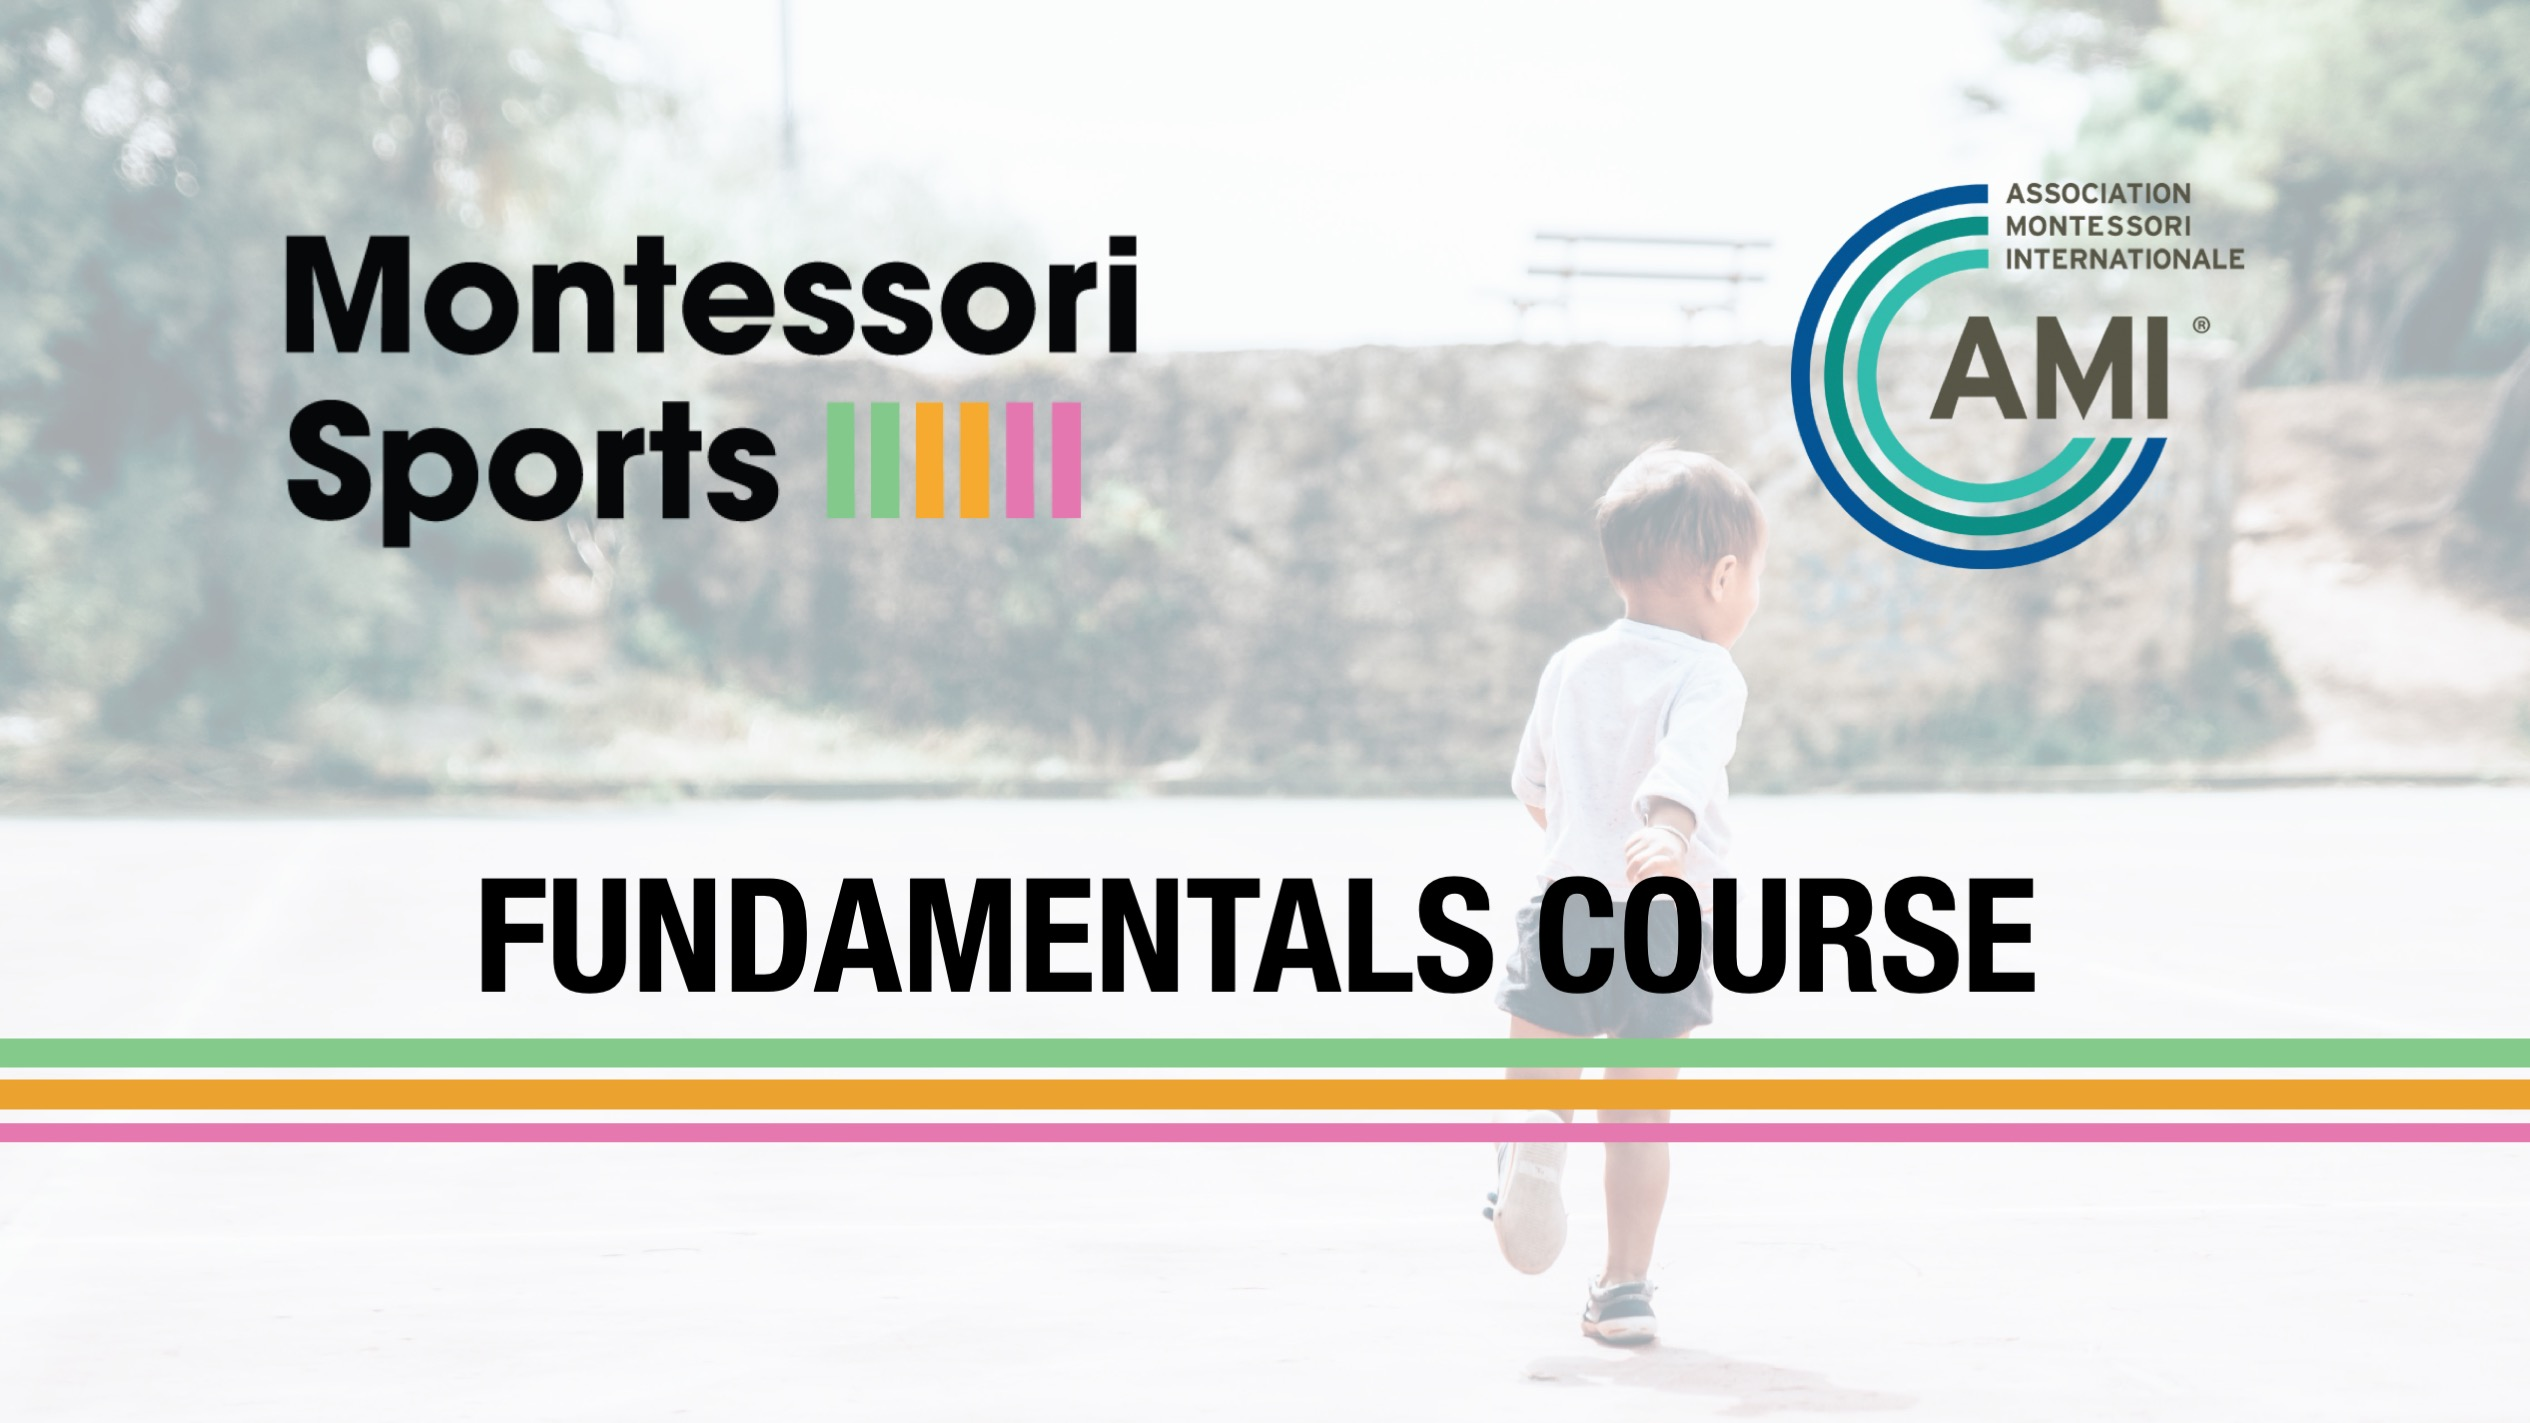 Digitalt kurs med Montessori Sports